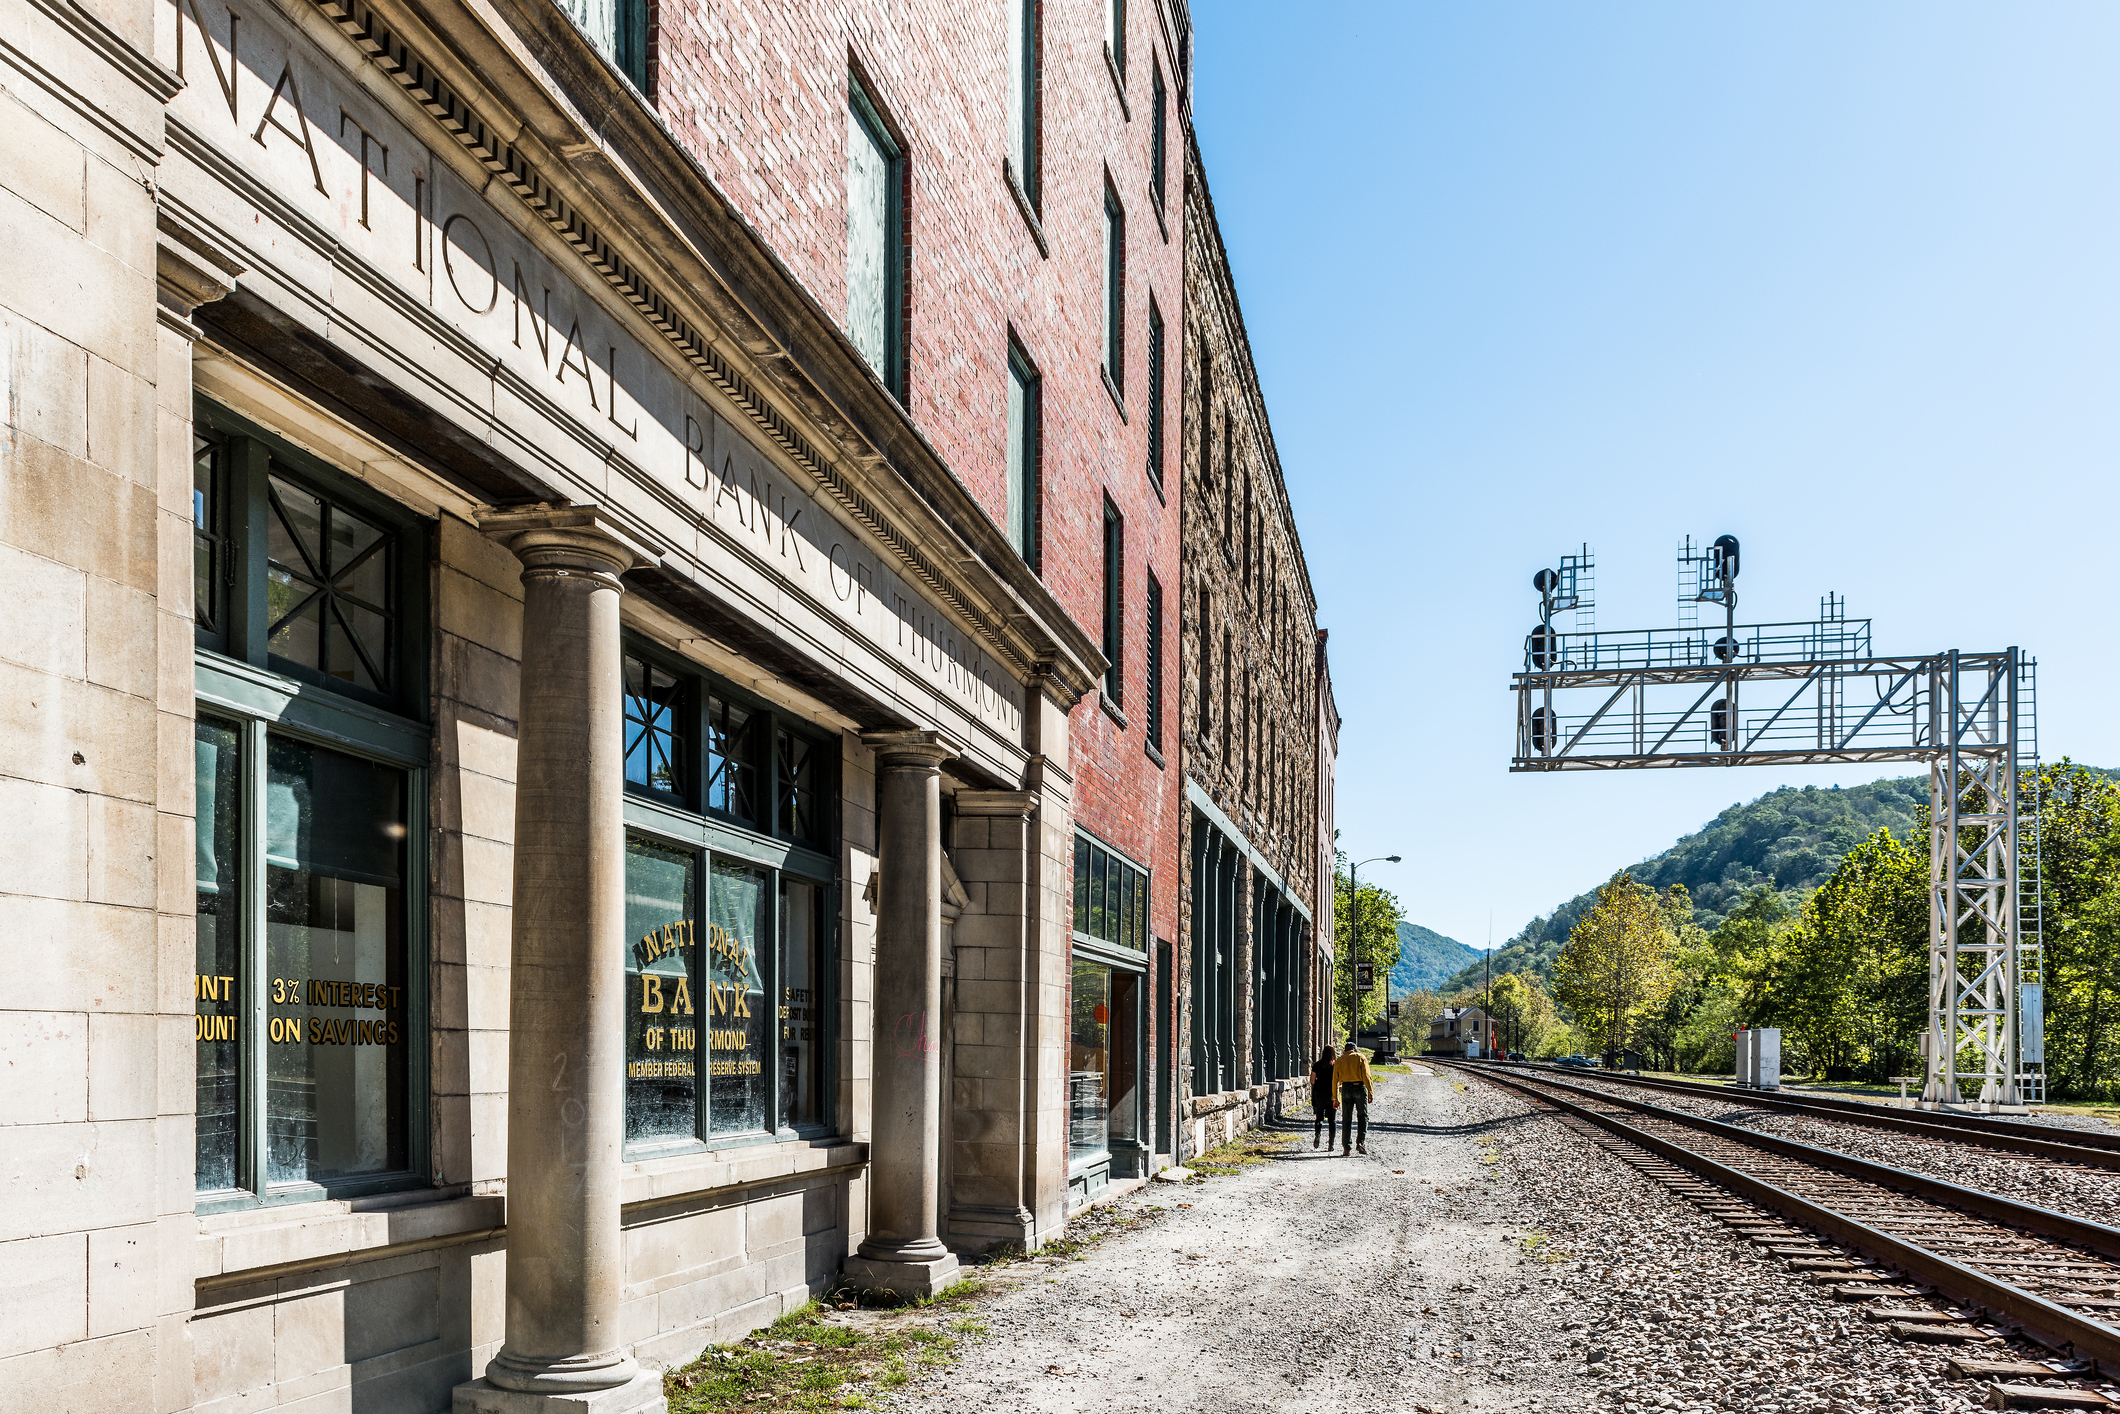 Abandoned closed retro vintage building with National Bank sign in West Virginia ghost town village, railroad